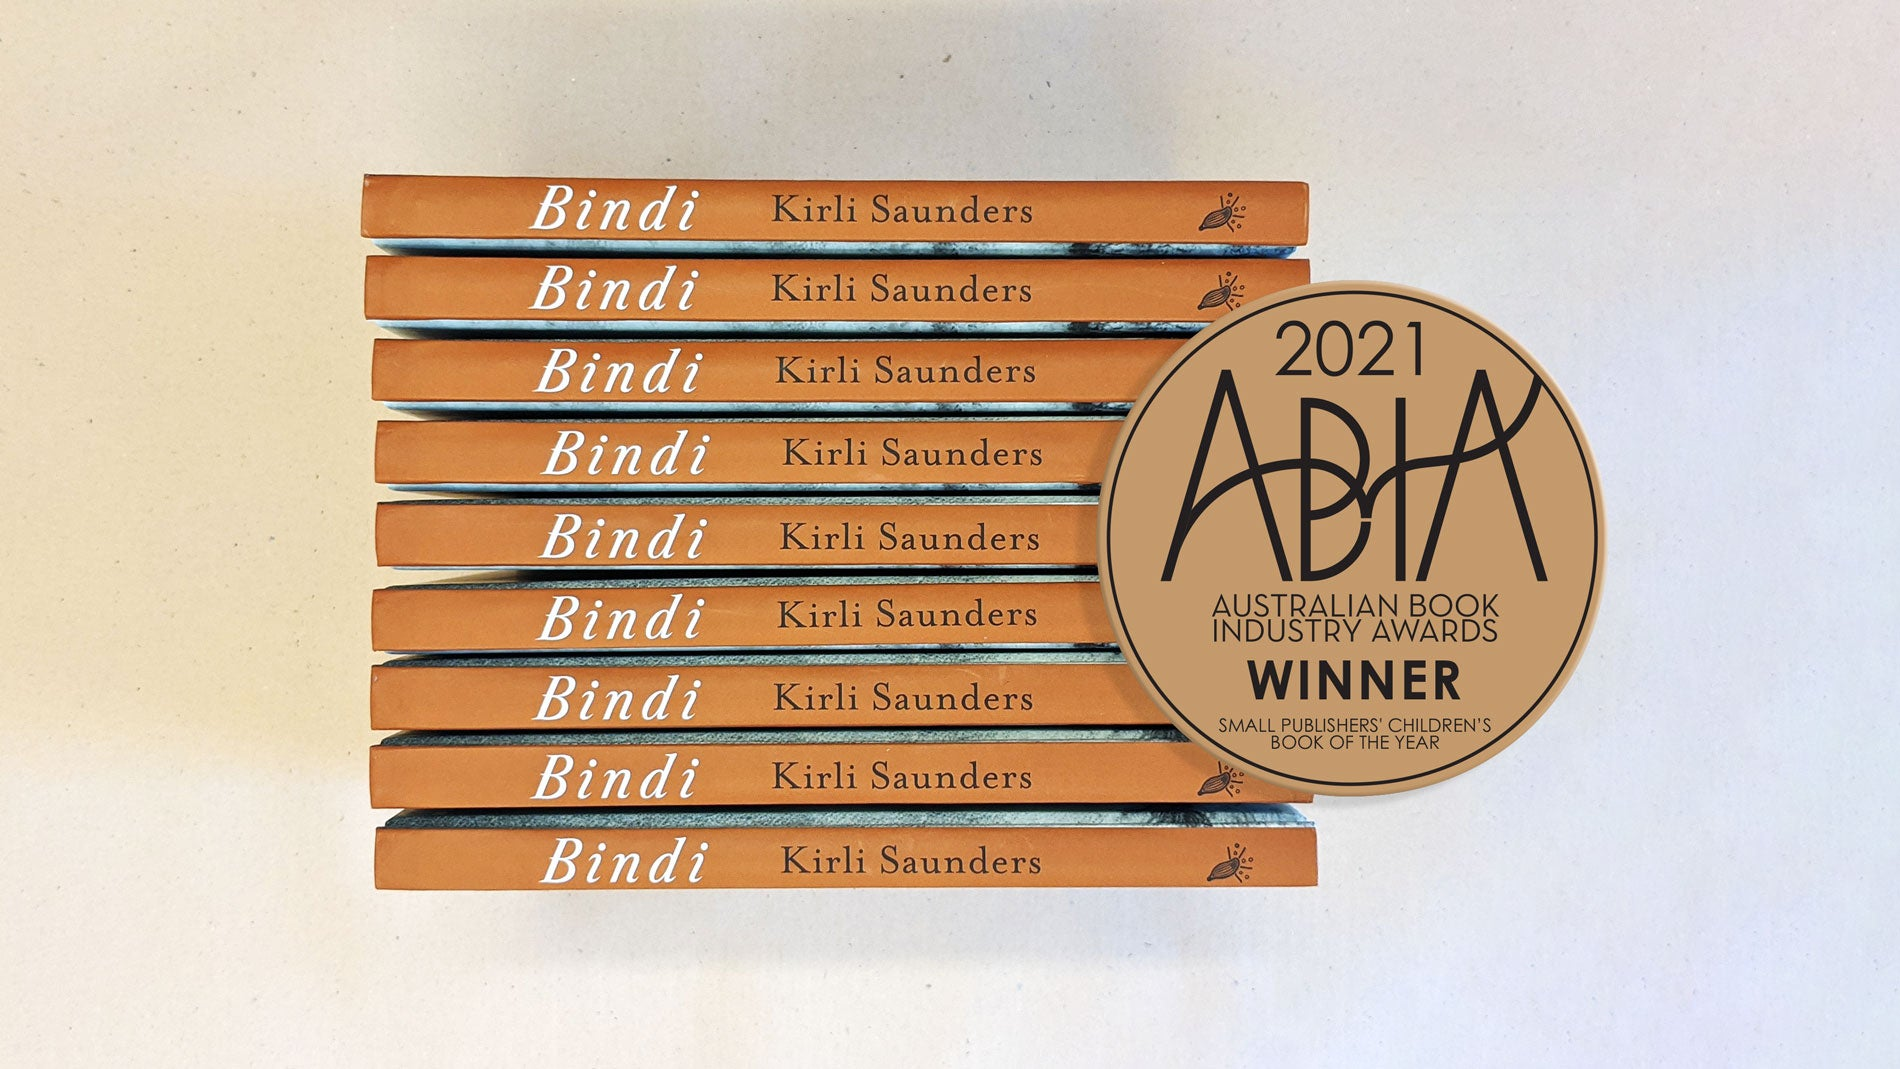 Magabala Books is thrilled to announced that Bindi by Kirli Saunders has won the 2021 Australian Book Industry Award for Small Publishers' Children's Book of the Year.